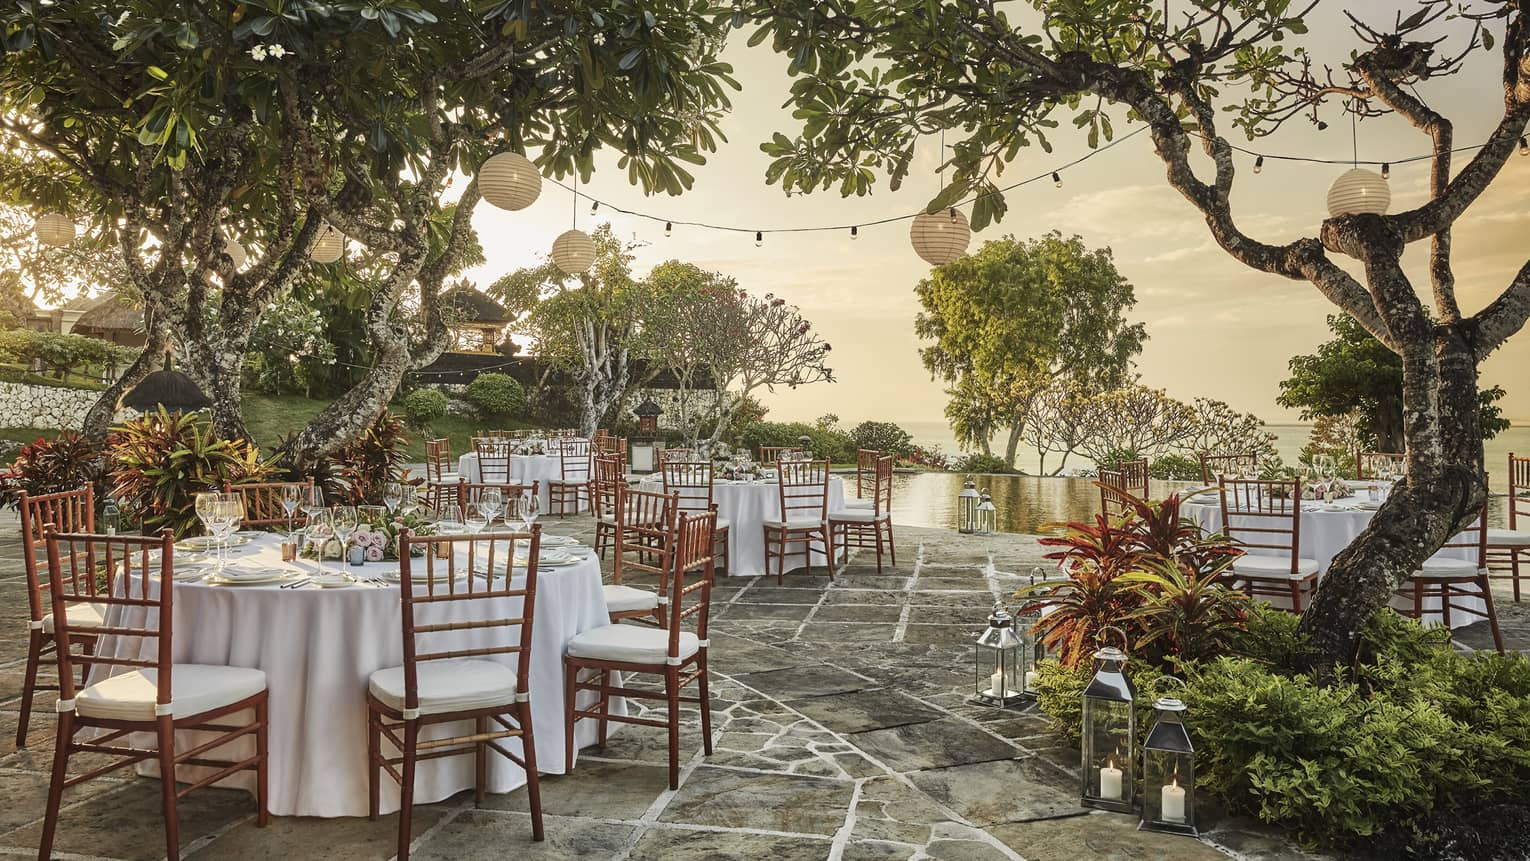 Patio wedding reception at sunset, small round banquet tables and chairs under trees